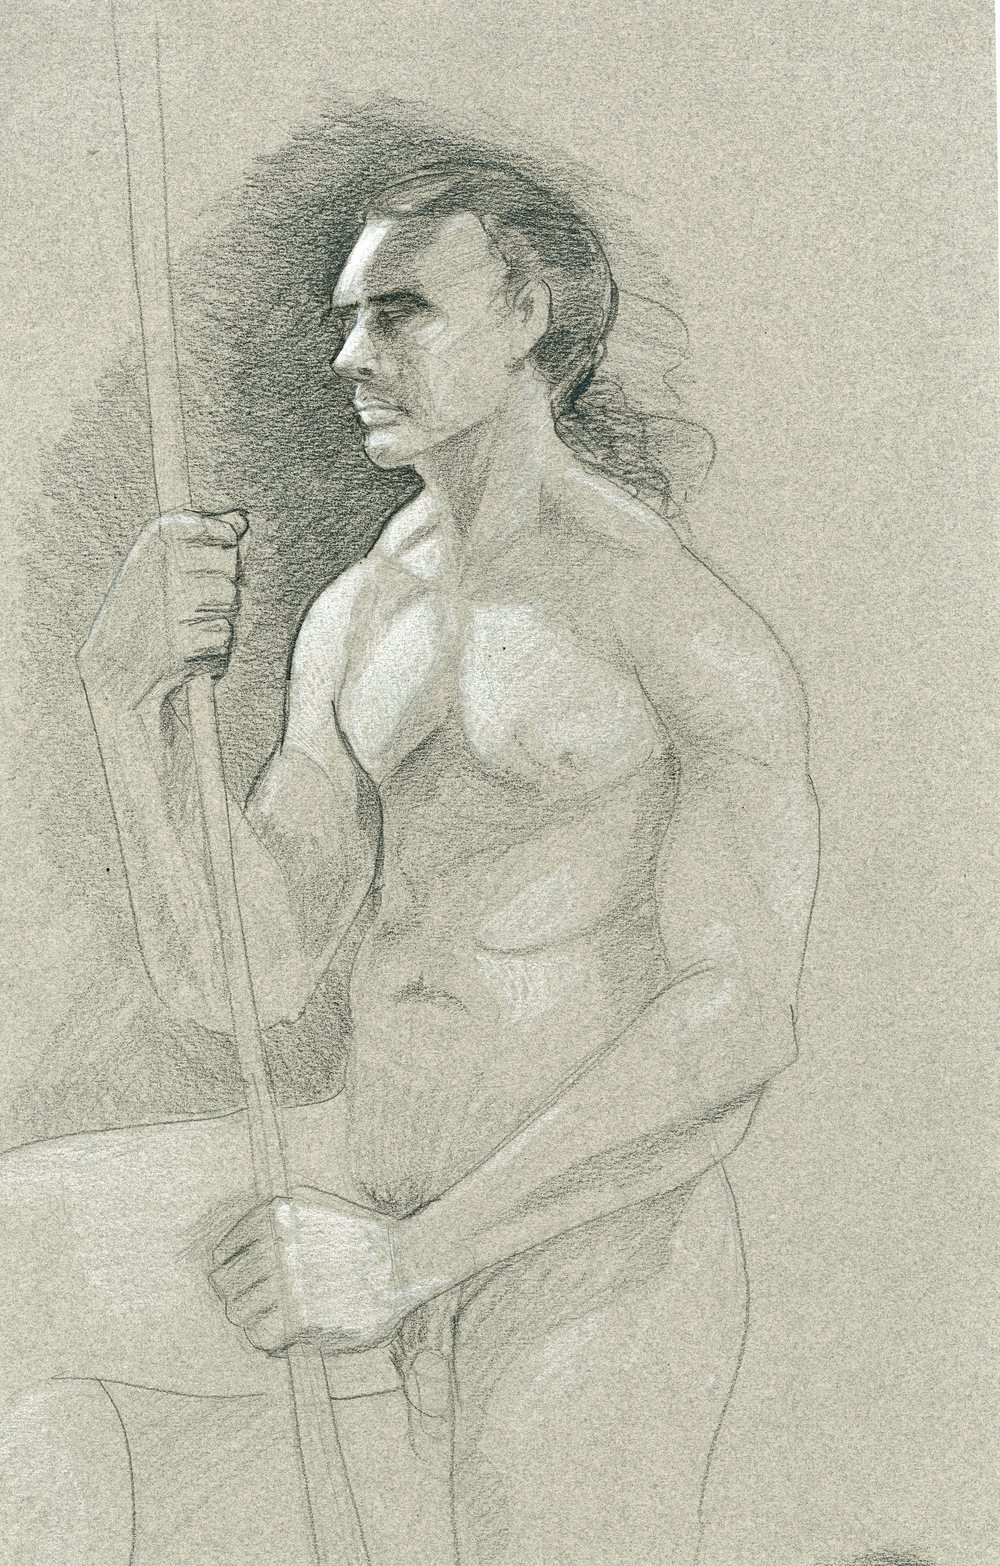 lifeDrawing_004.jpg